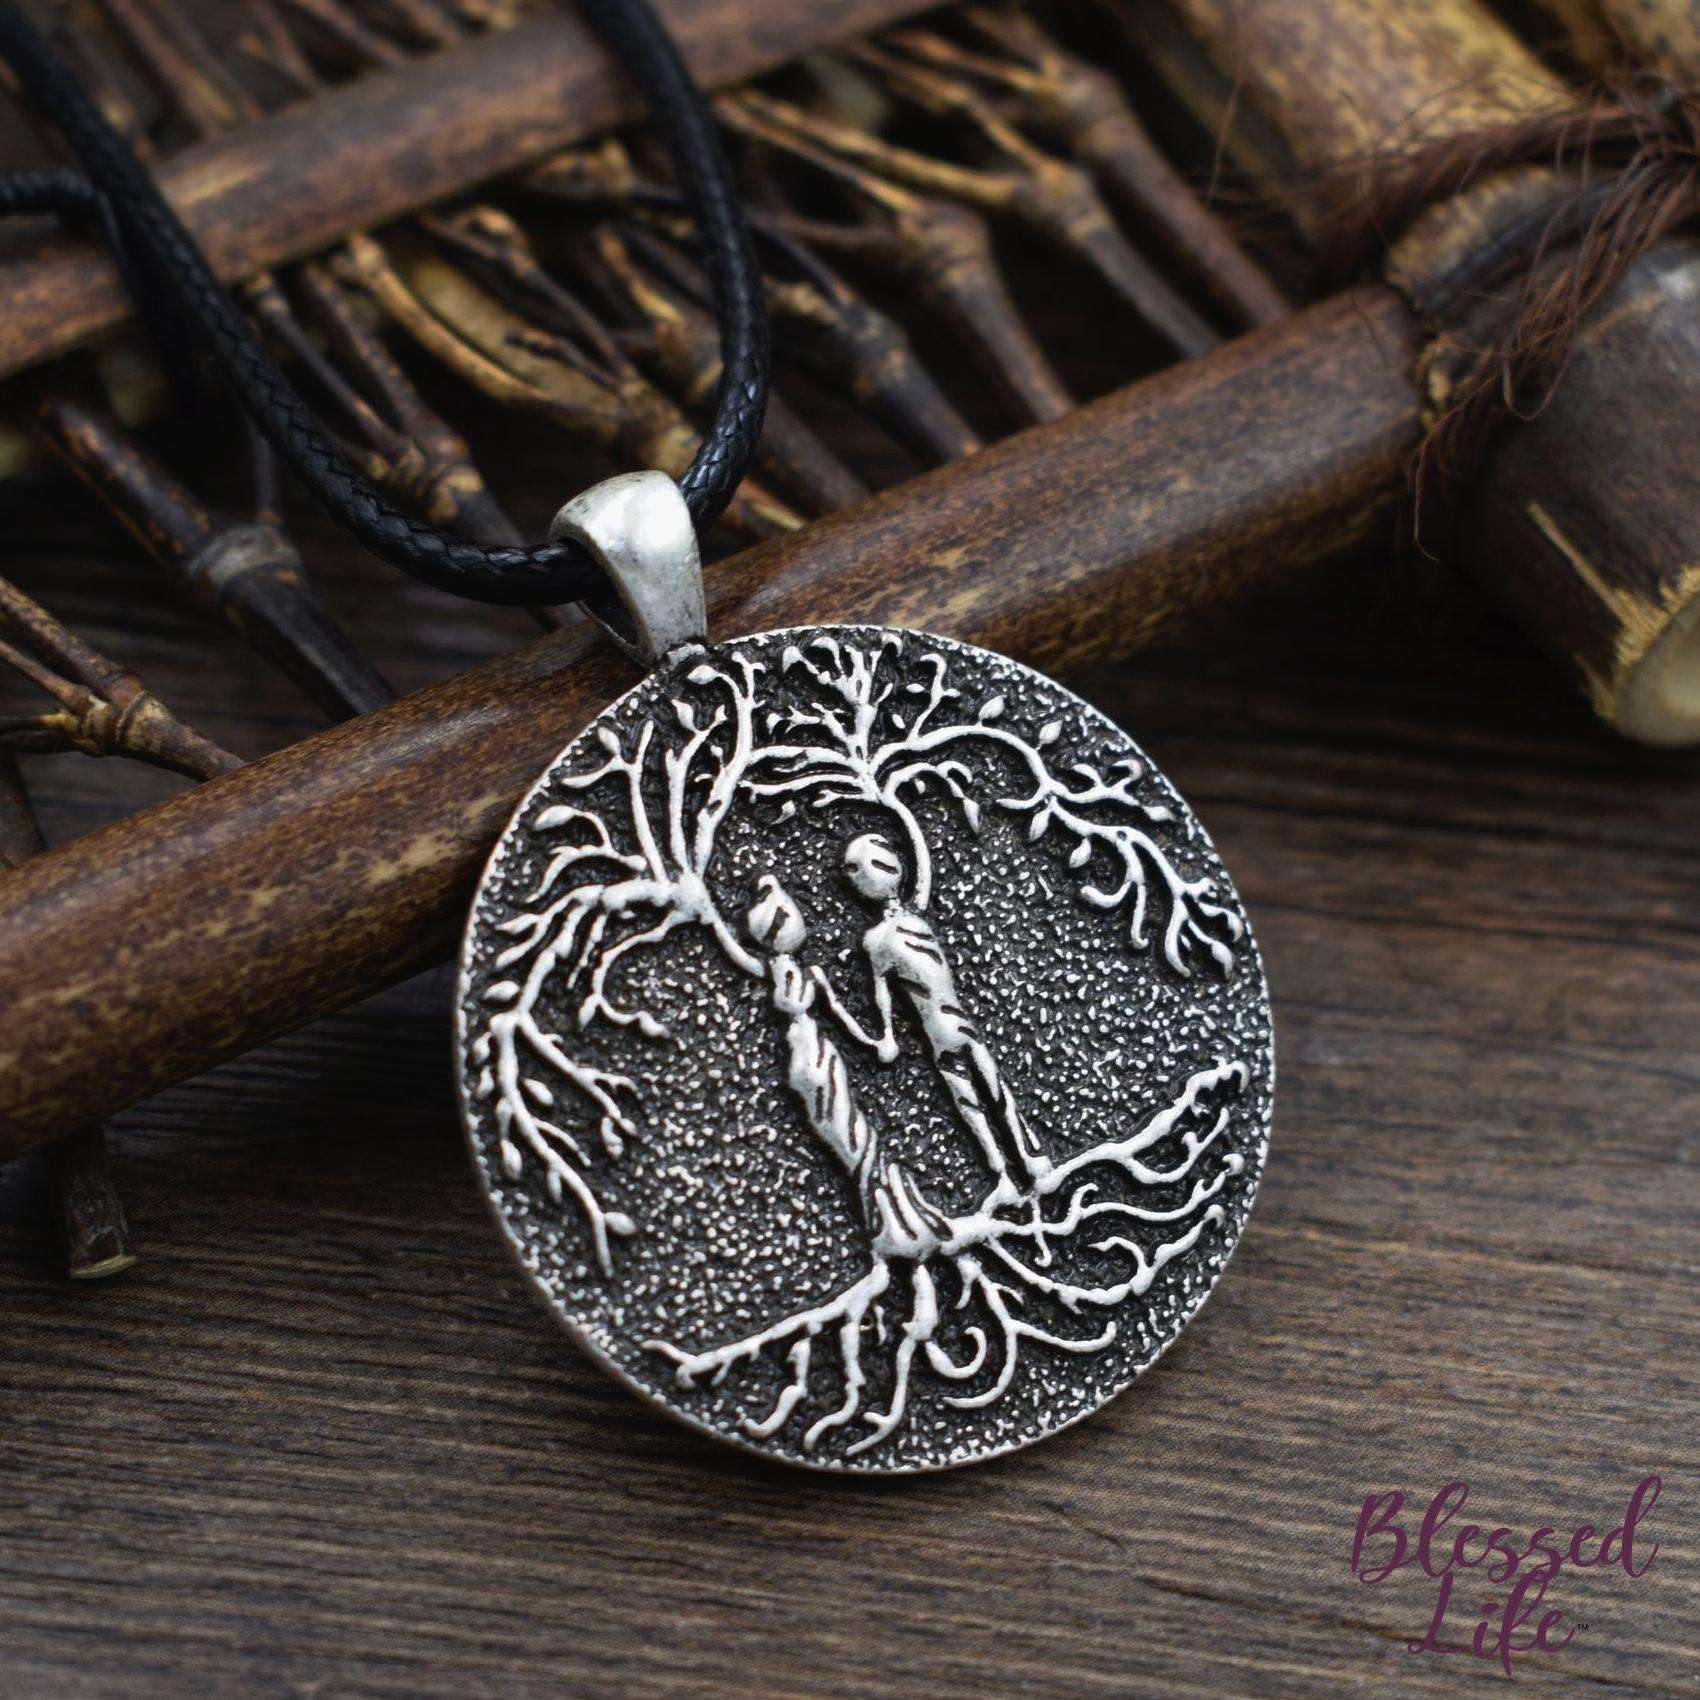 Beloved Life Jewelry: Husband & Wife 'Tree of Life' Pendant Necklace [Silver]